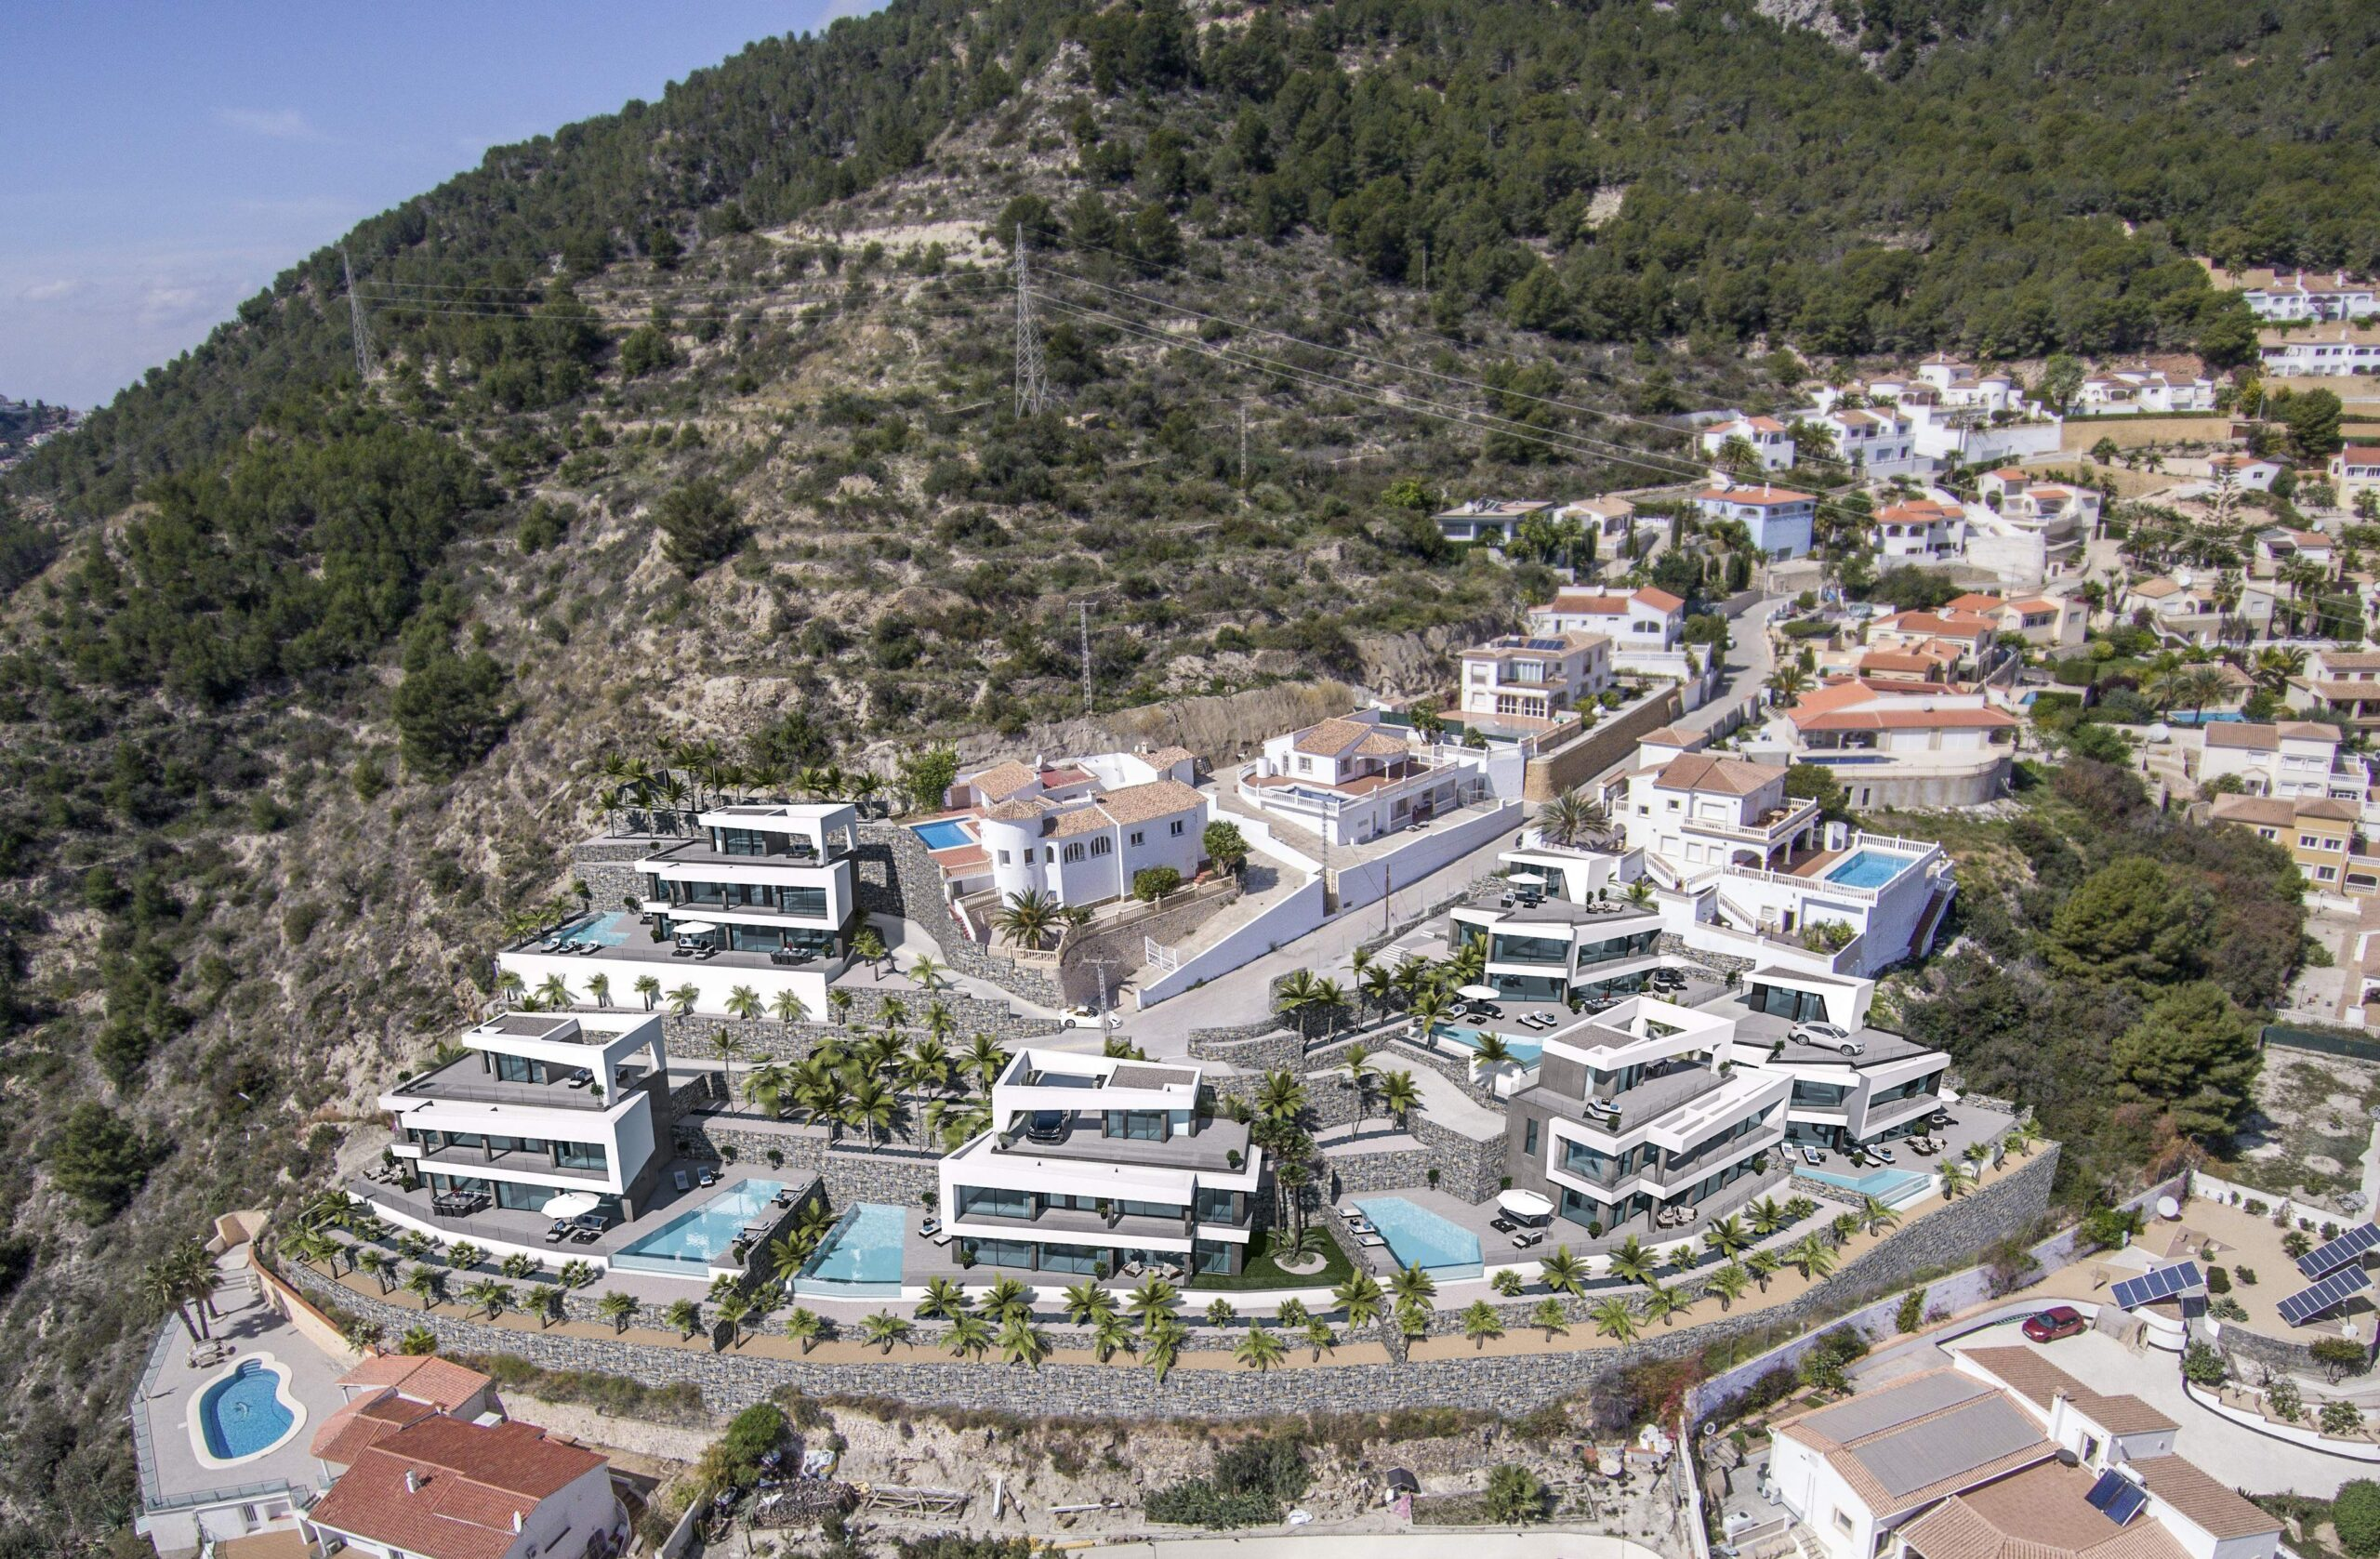 4 Bed 5 Bath Villa of luxury For Sale in Calpe ref A – 2738